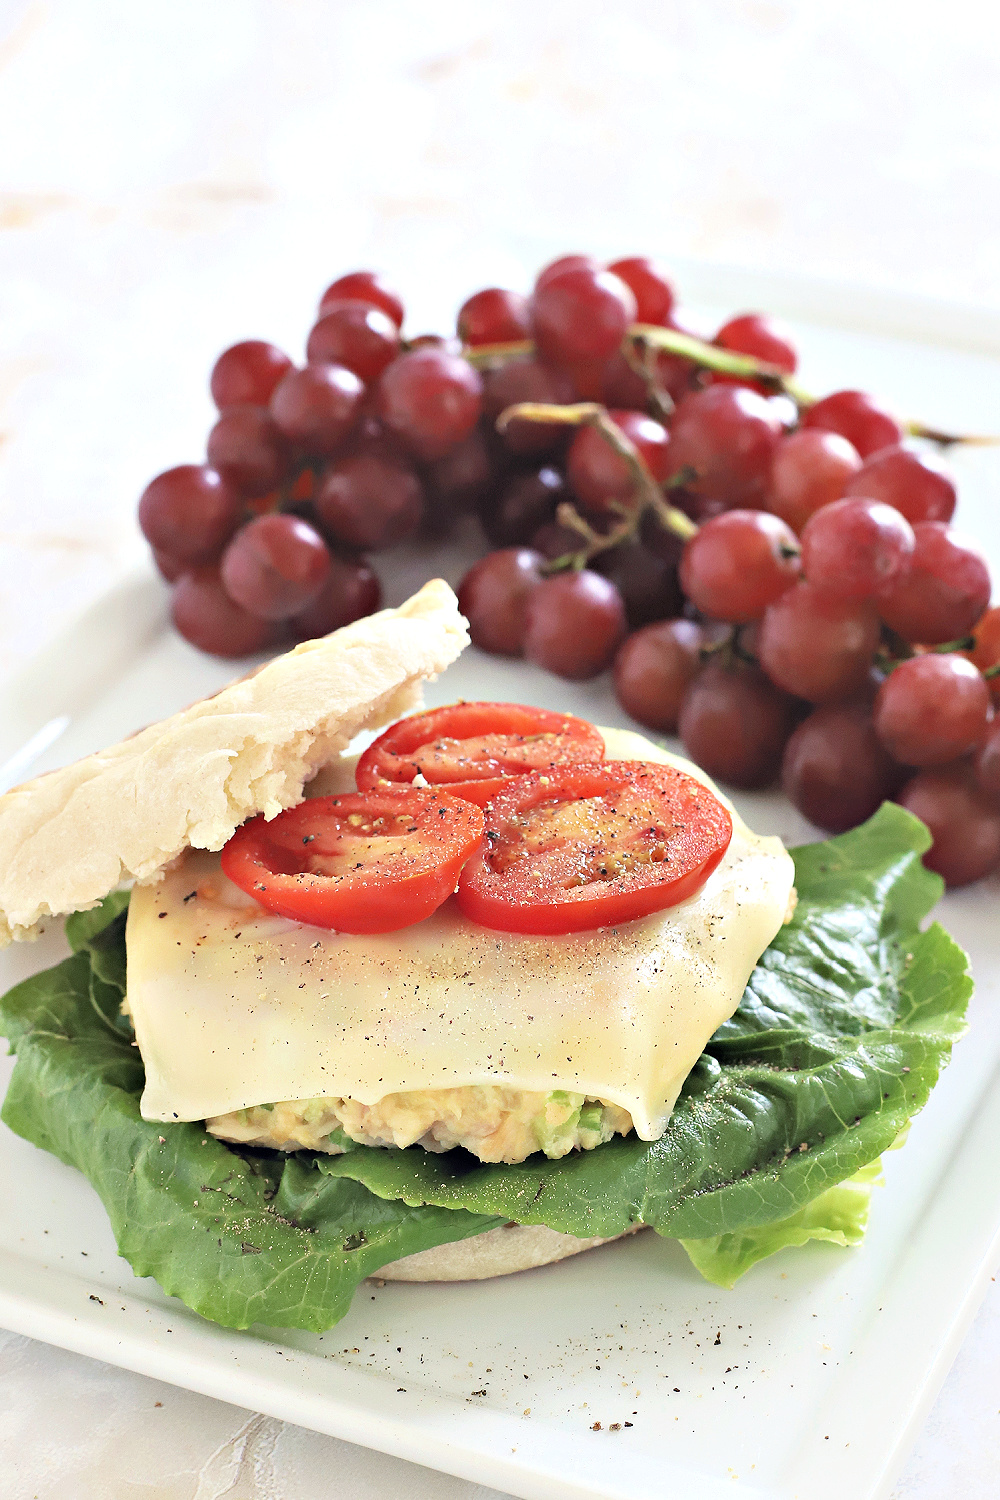 Easy recipe for a classic tuna melt with cheese